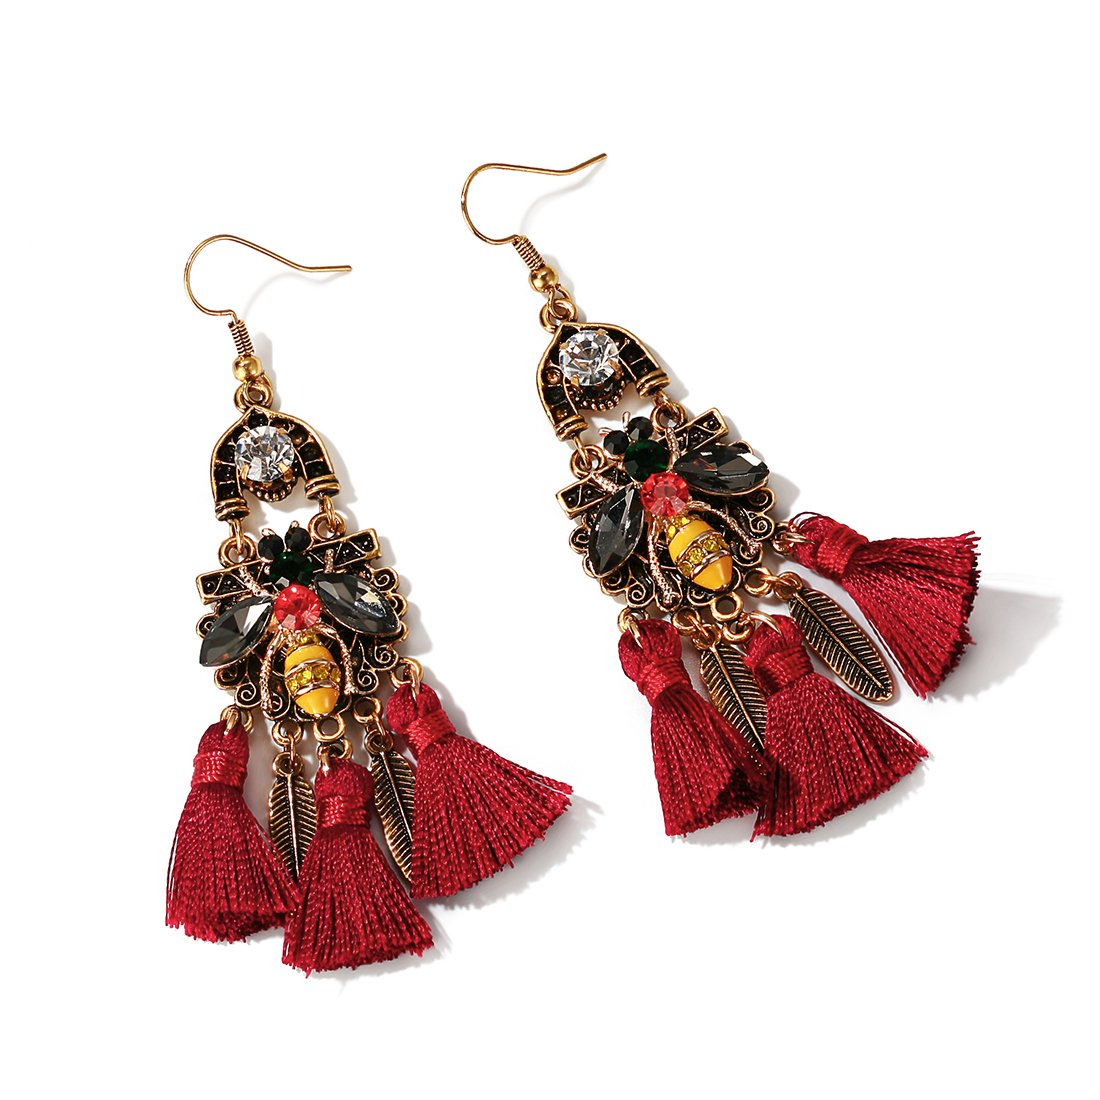 QANCI Women's Red Tassel Bee Retro Baroque Feather Dangle Drop Earrings for Girls Pretty Personalized National Style Charming Gifts by QANCI